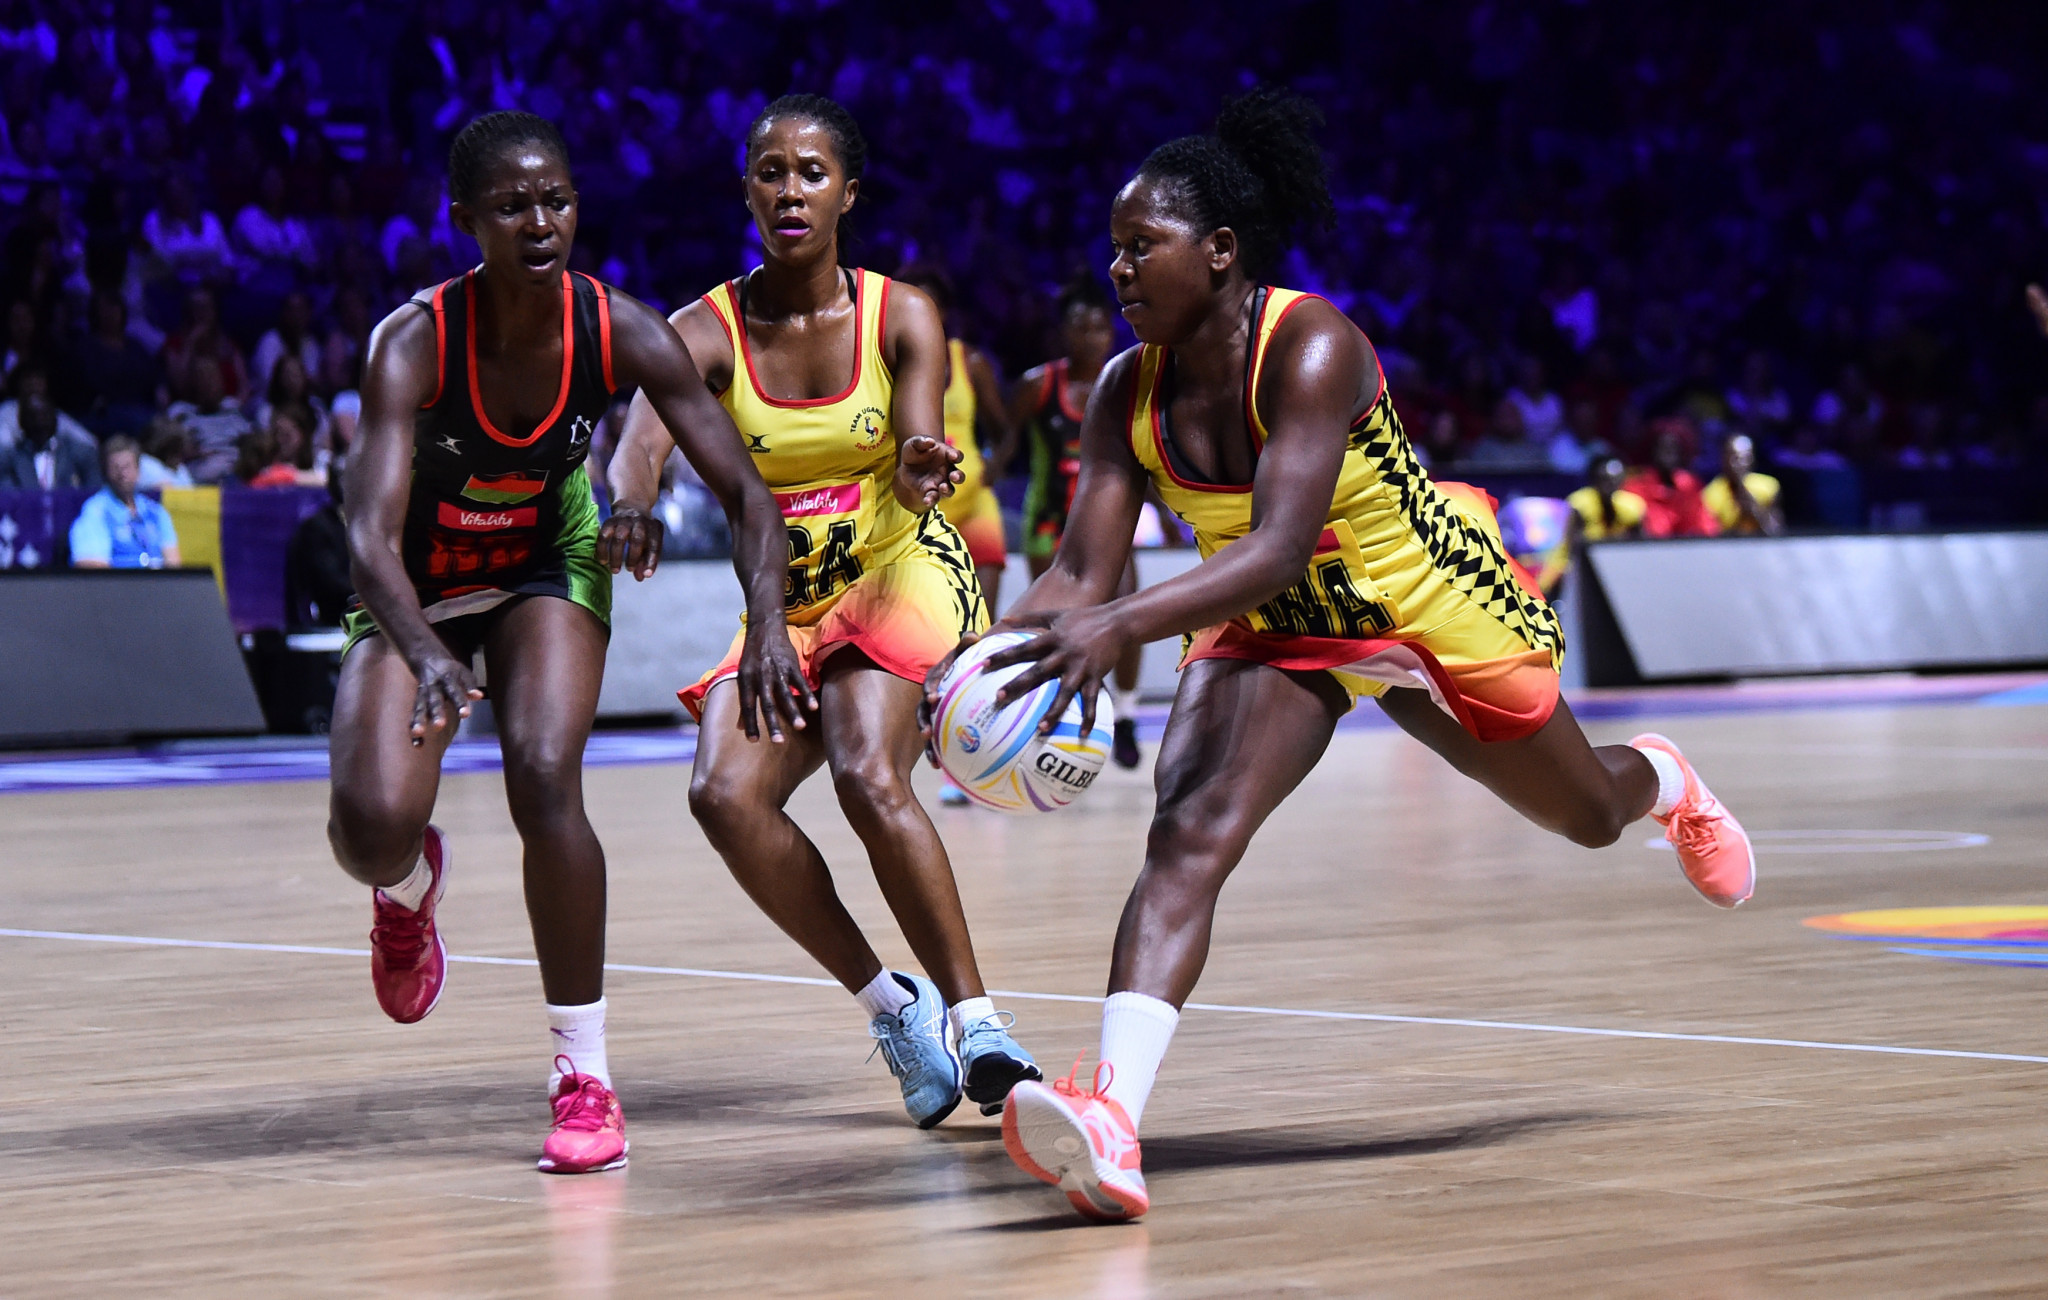 Jamaica and Malawi to meet in fifth-place playoff at Netball World Cup